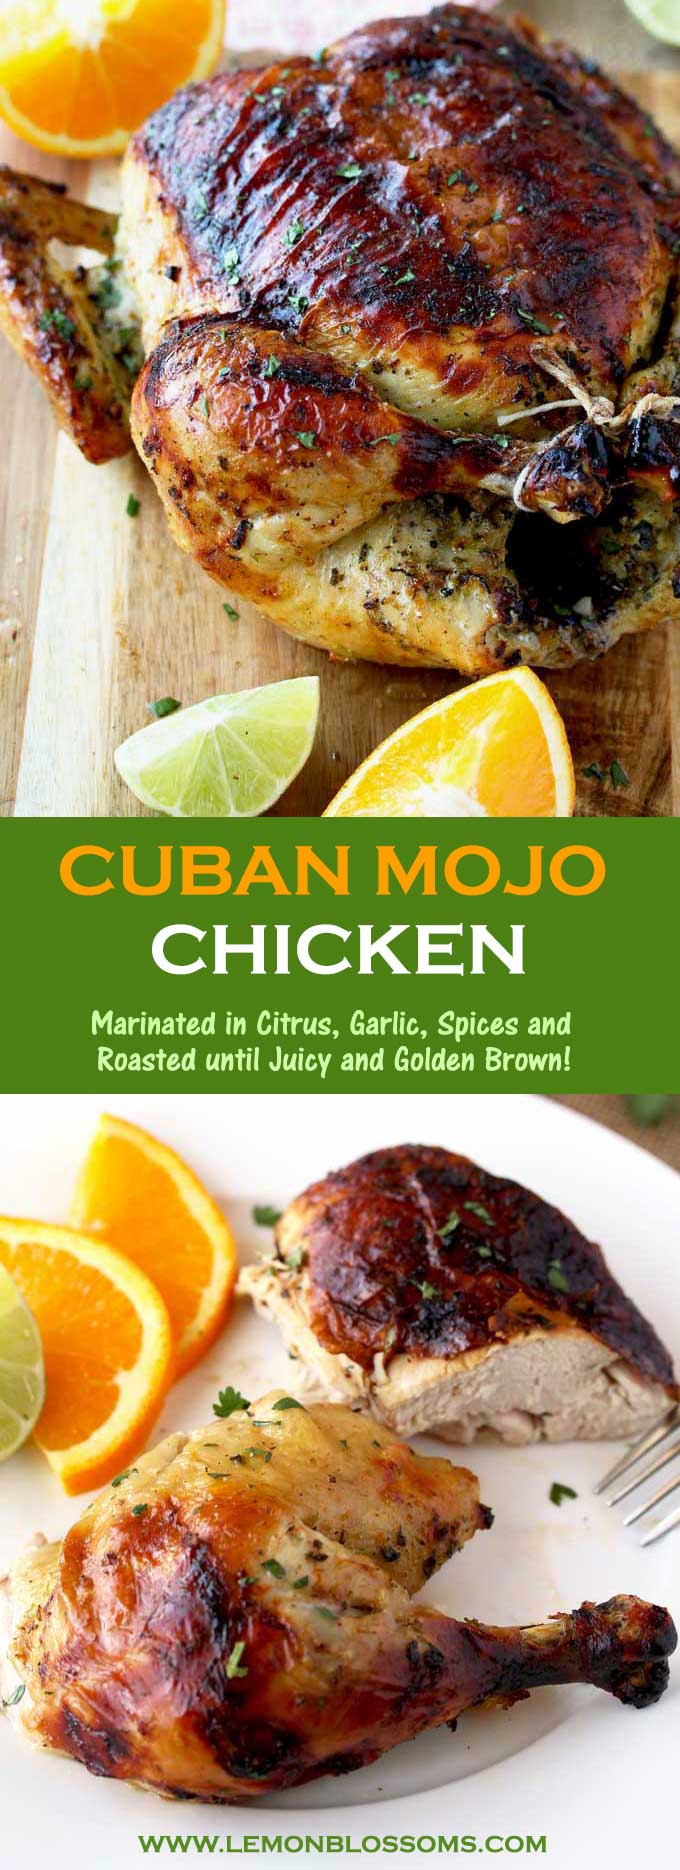 This Cuban Mojo Chicken is infused with a flavorful Mojo marinade made with citrus, garlic and spices, then oven roasted until golden brown, juicy and tender! This mouthwatering Mojo Chicken is perfect for dinner any day of the week and also fabulous for company! #chickendinner #CubanMojo #Mojo #roastedchicken #chickenrecipe